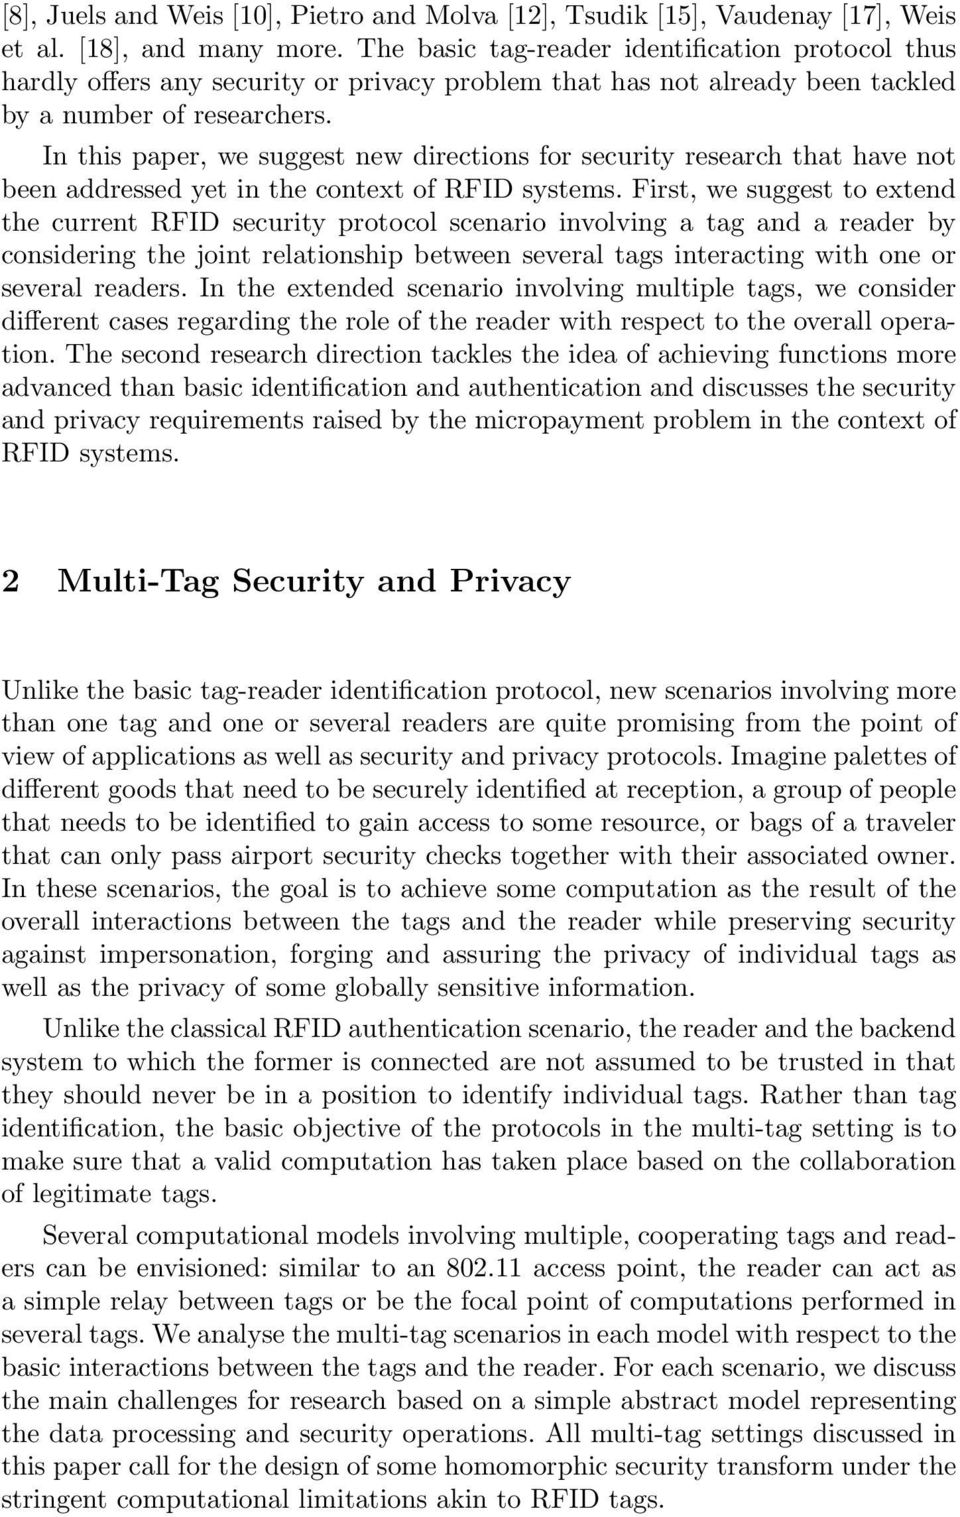 In this paper, we suggest new directions for security research that have not been addressed yet in the context of RFID systems.